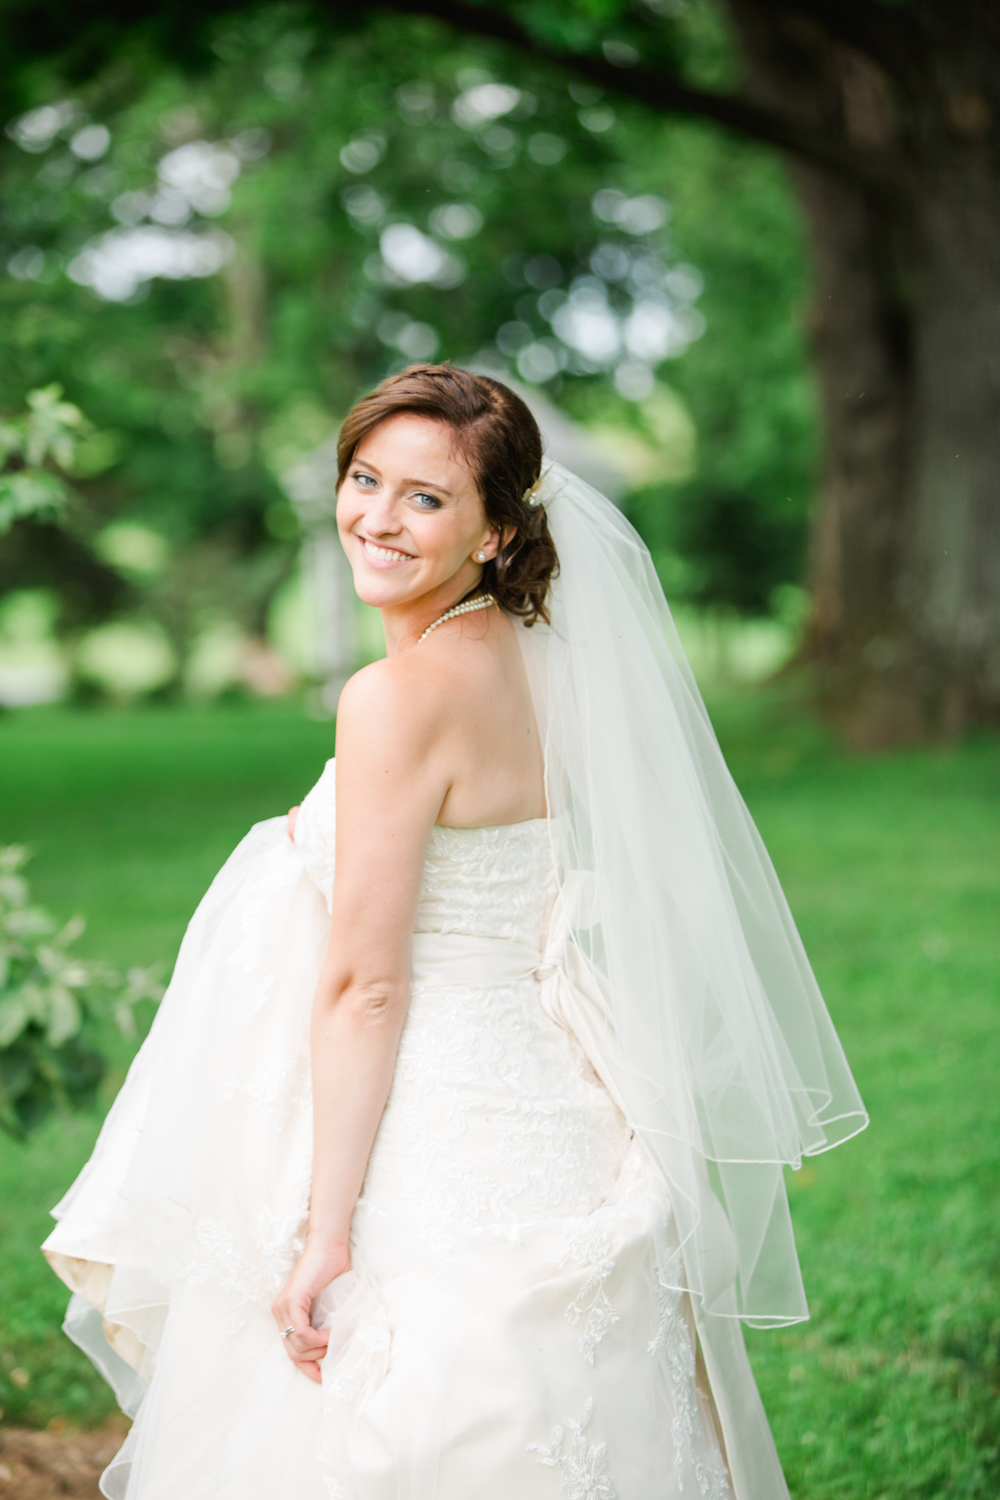 Whitehall_Estate_Wedding_Katlyn&Mike_Wed-795.JPG